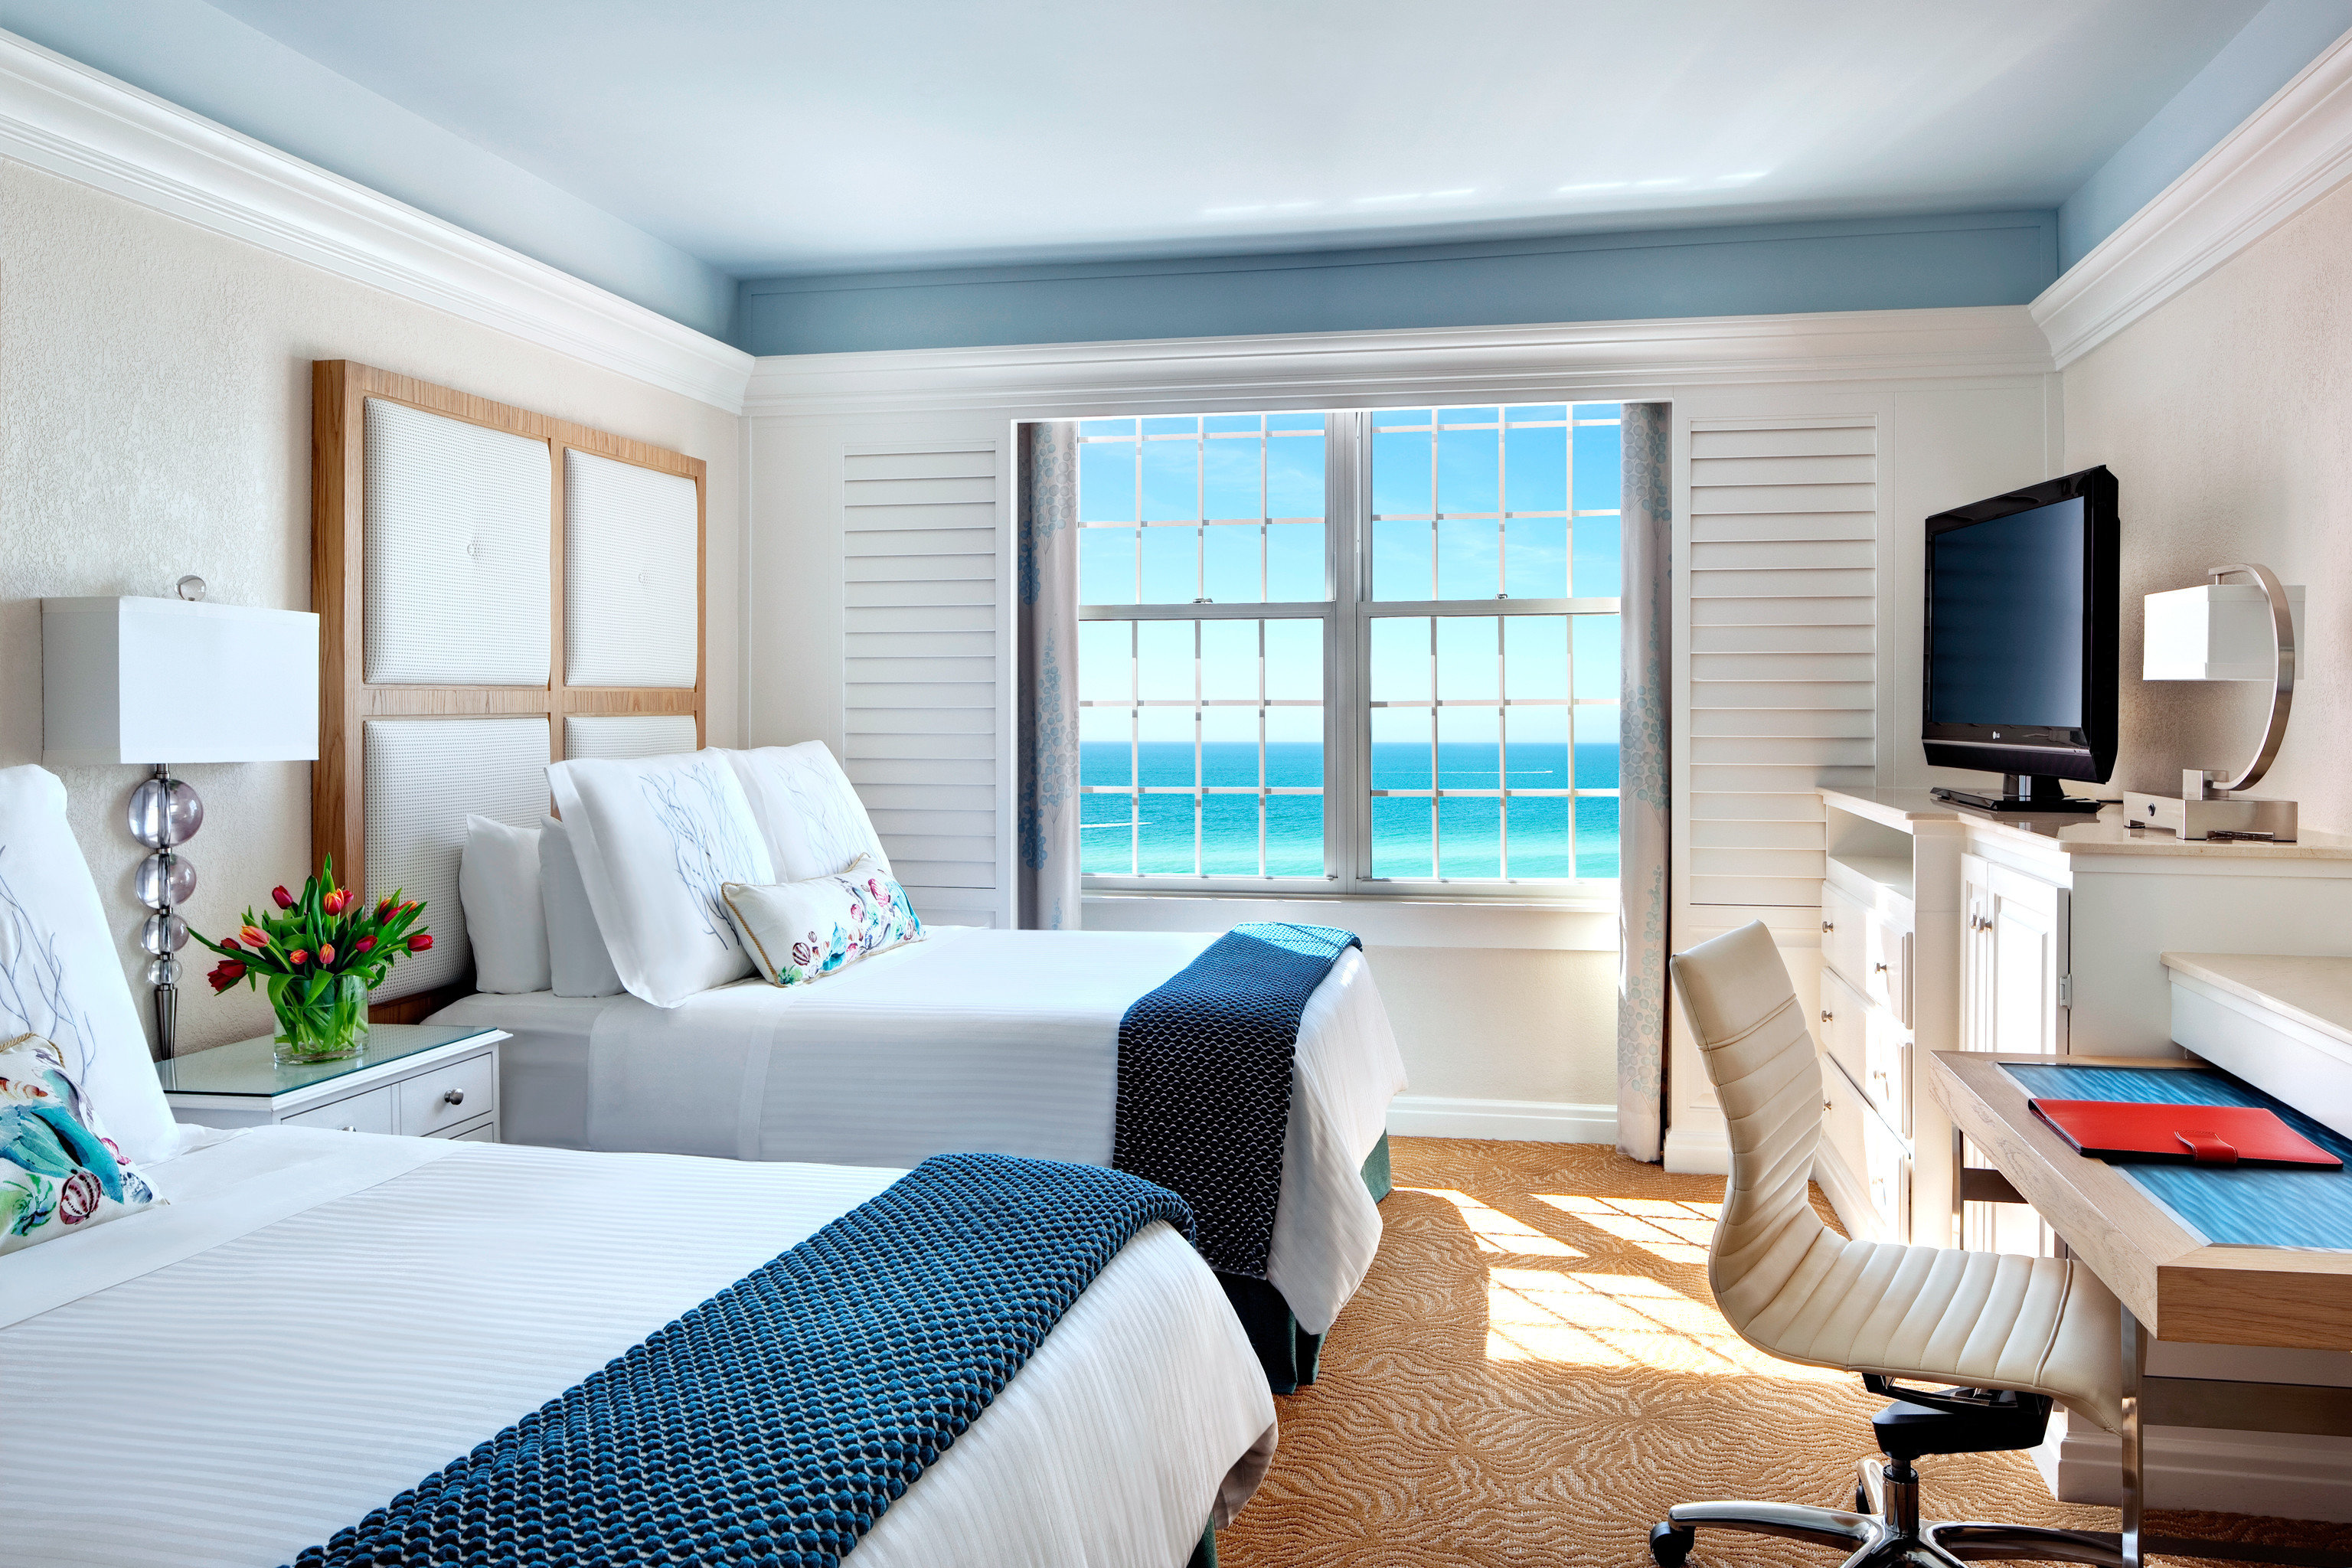 Bedroom Classic Family Resort property chair living room Suite condominium home white cottage Villa Modern